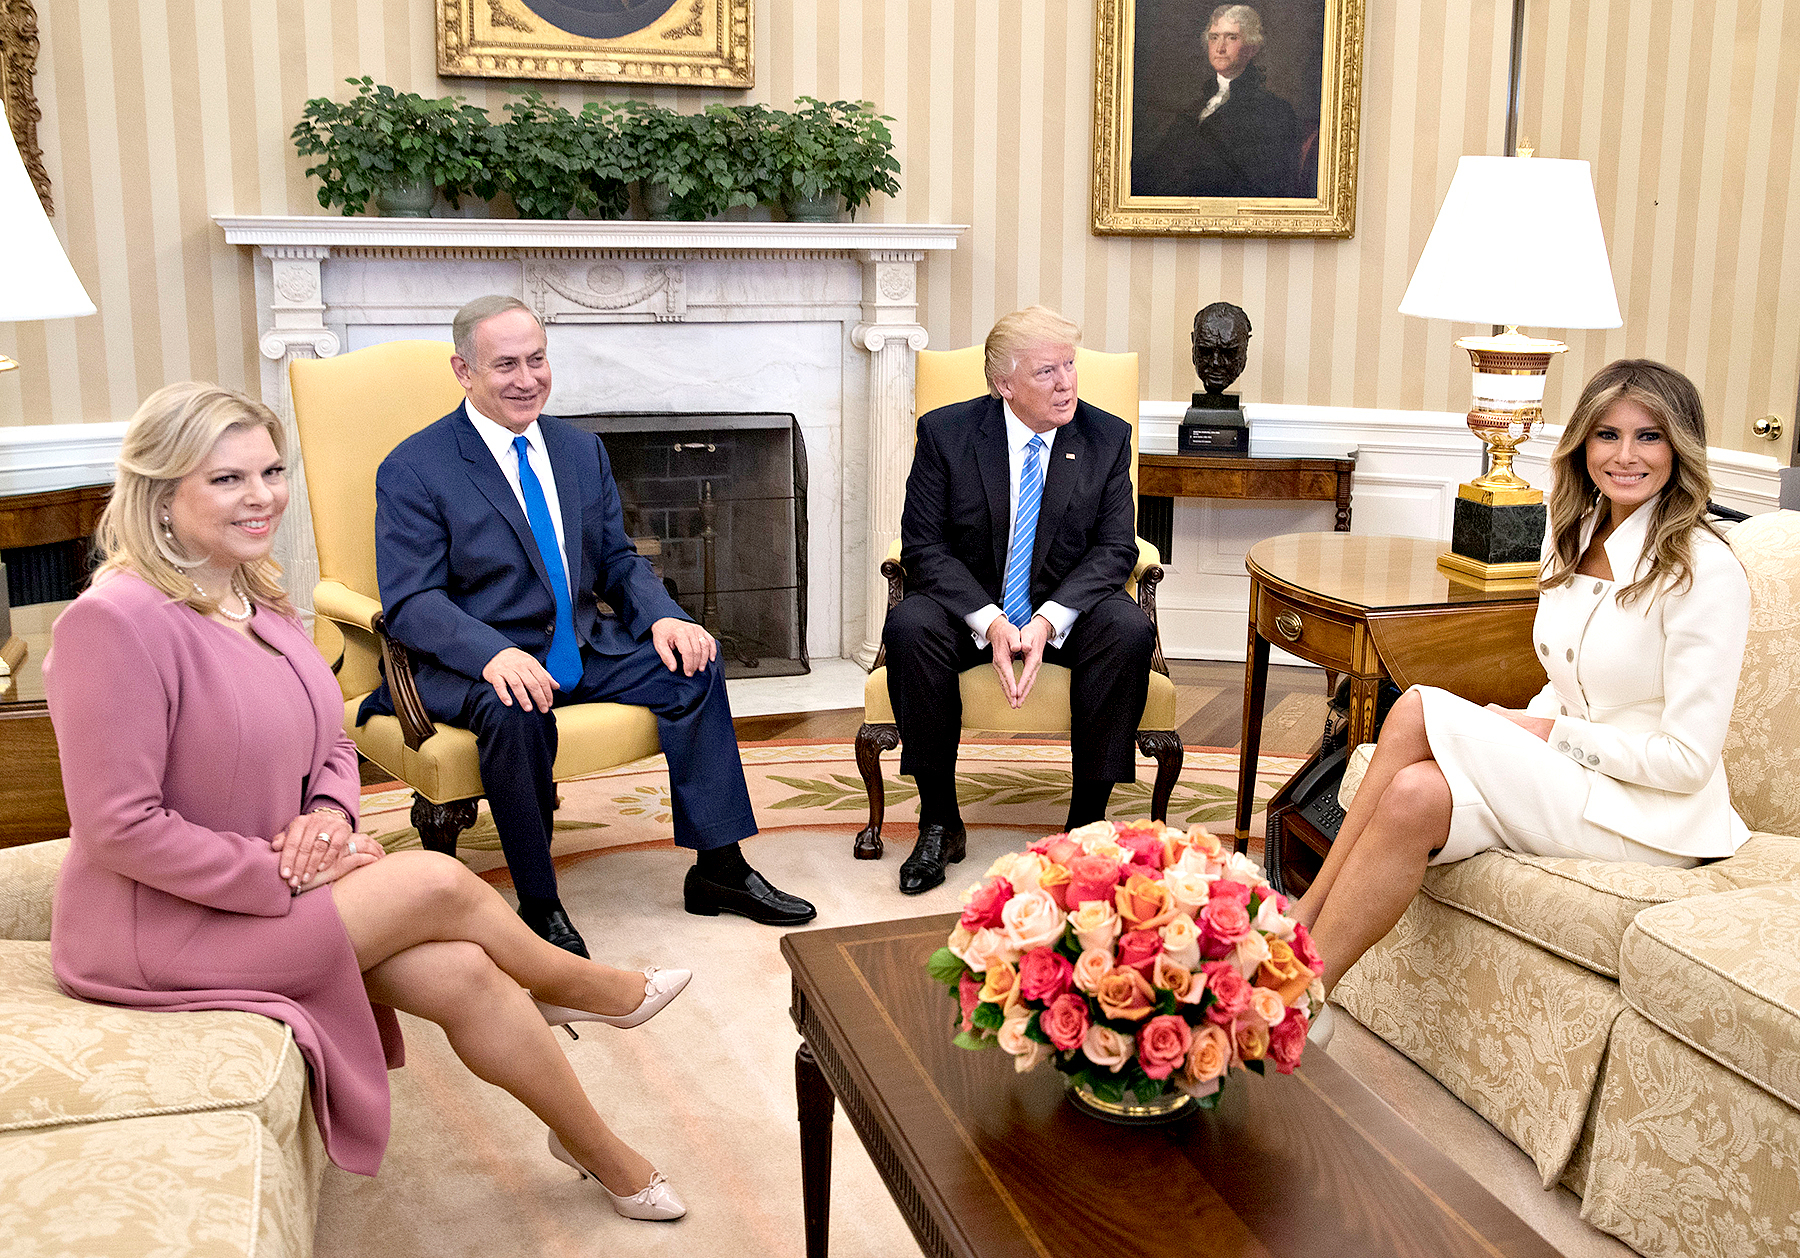 U.S. President Donald Trump, Israel Prime Minister Benjamin Netanyahu, his wife Sara Netanyahu (L) and U.S. first lady Melania Trump sit in the Oval Office of the White House on February 15, 2017 in Washington, D.C. Netanyahu is trying to recalibrate ties with the new U.S. administration after eight years of high-profile clashes with former President Barack Obama, in part over Israel's policies toward the Palestinians.